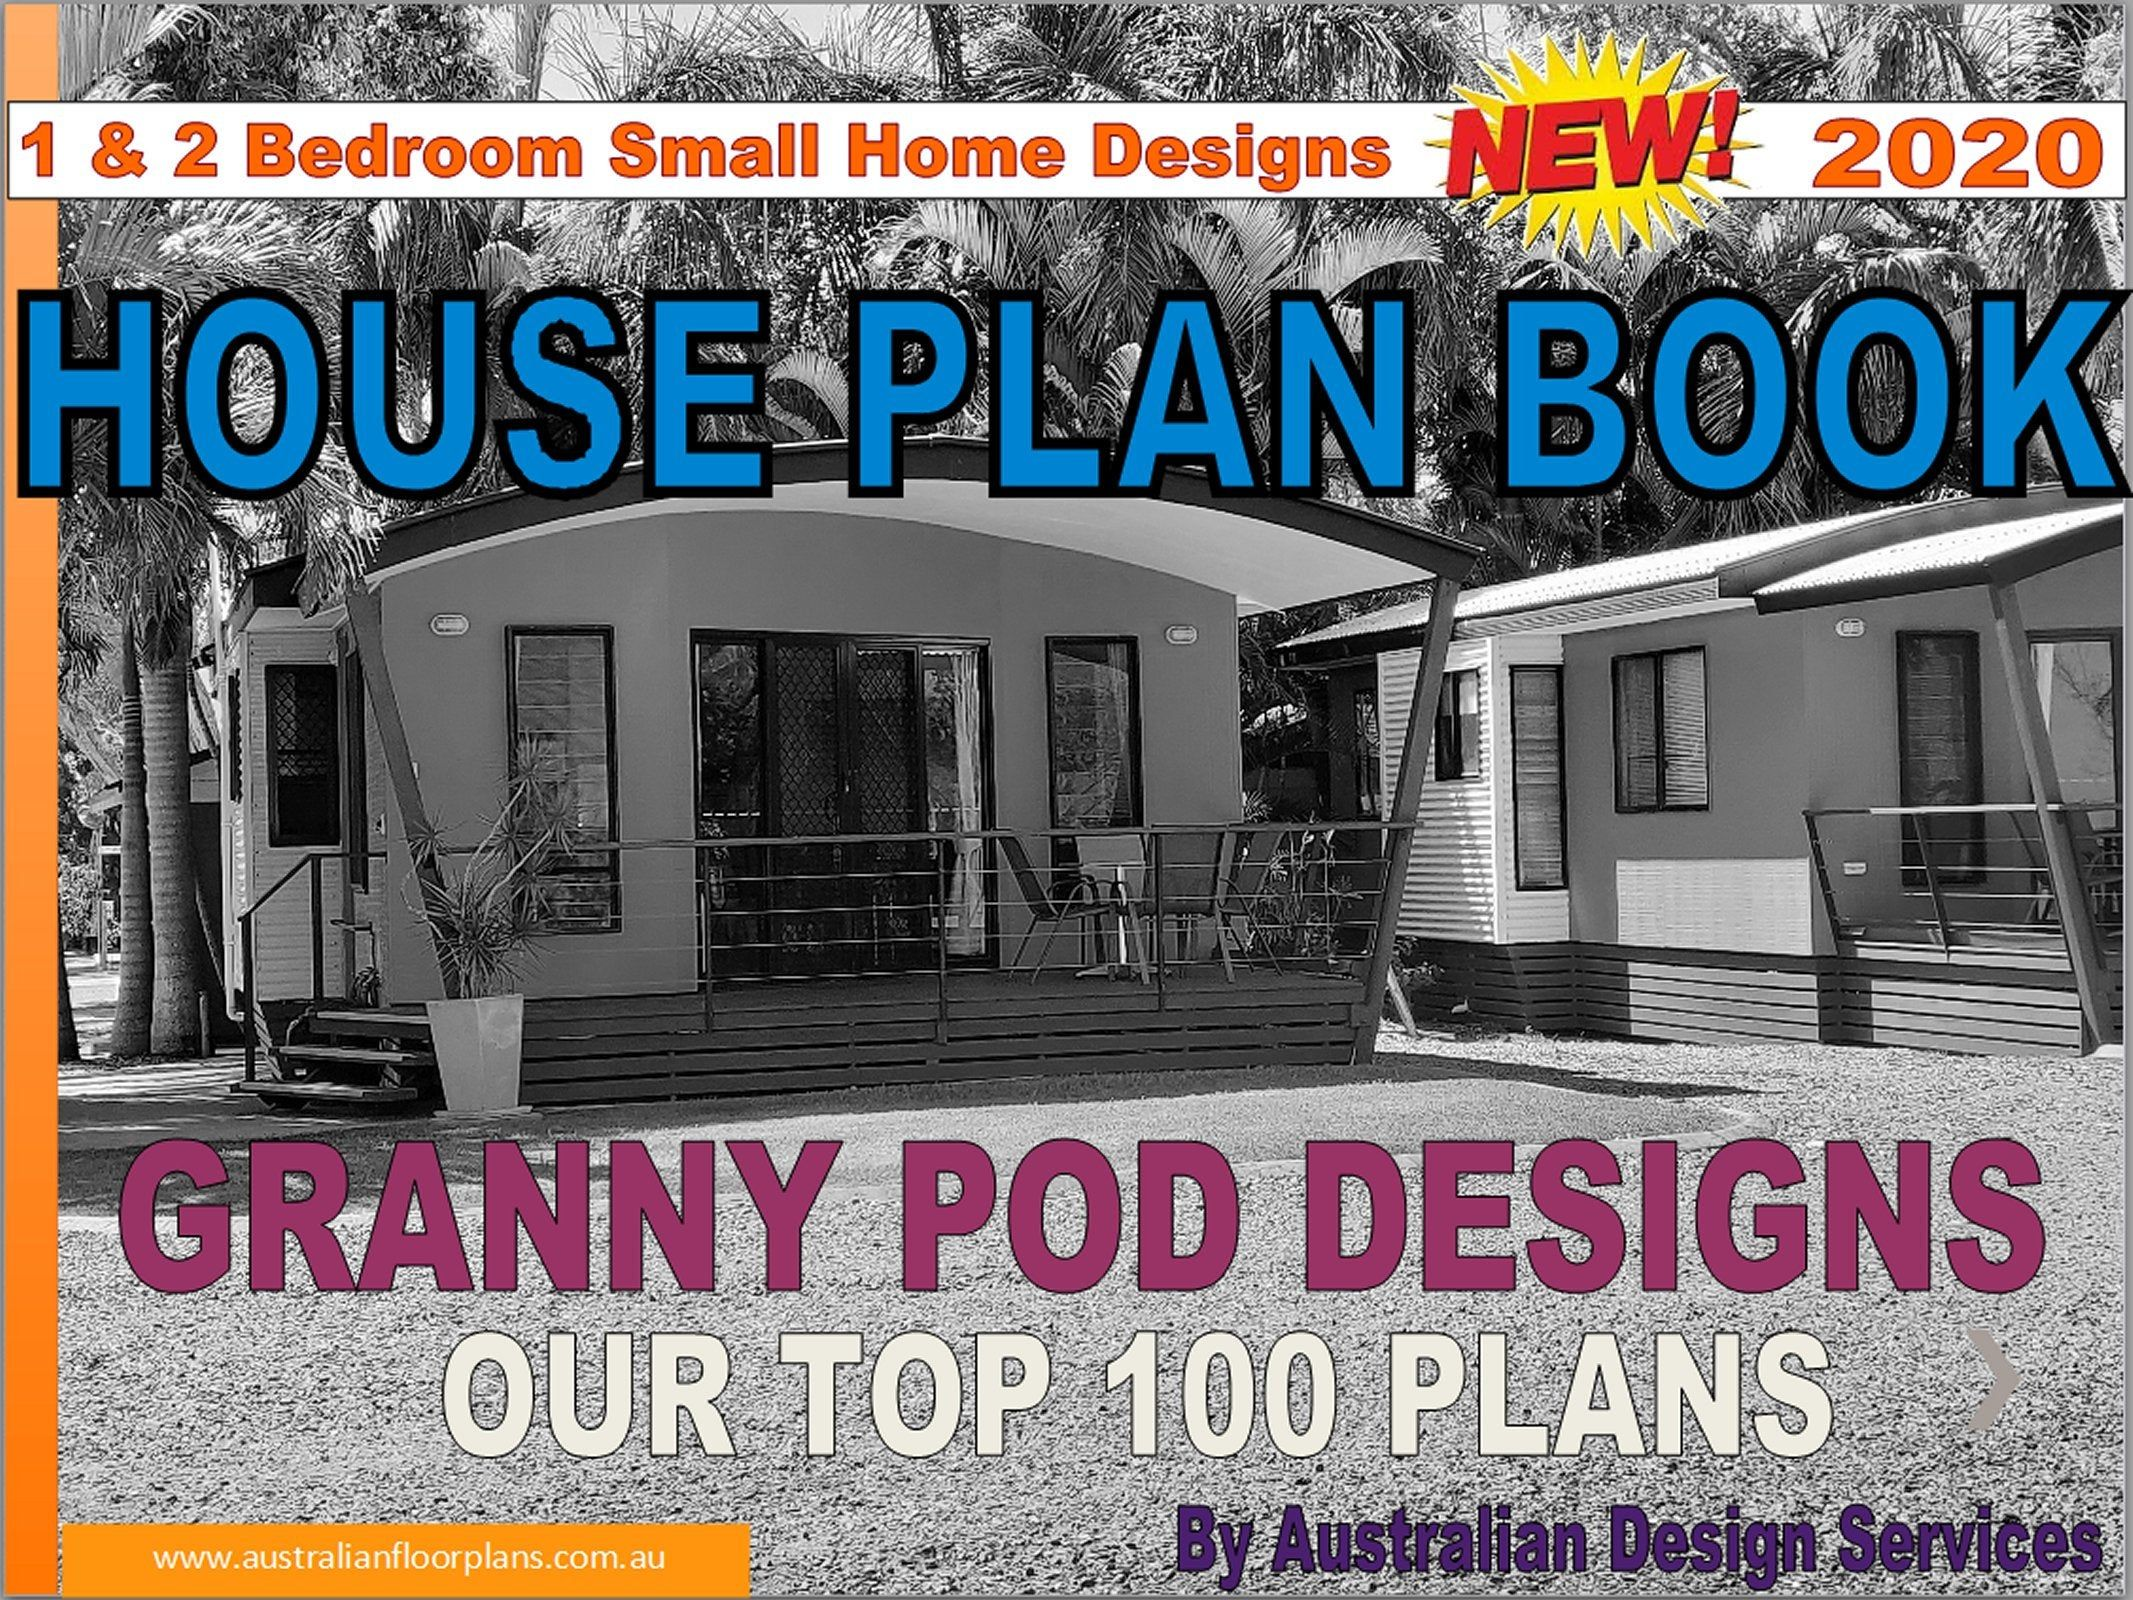 Granny Pods House Design Book Small and Tiny International Home Plans – house plans, house plans australia, small house plans,tiny plans